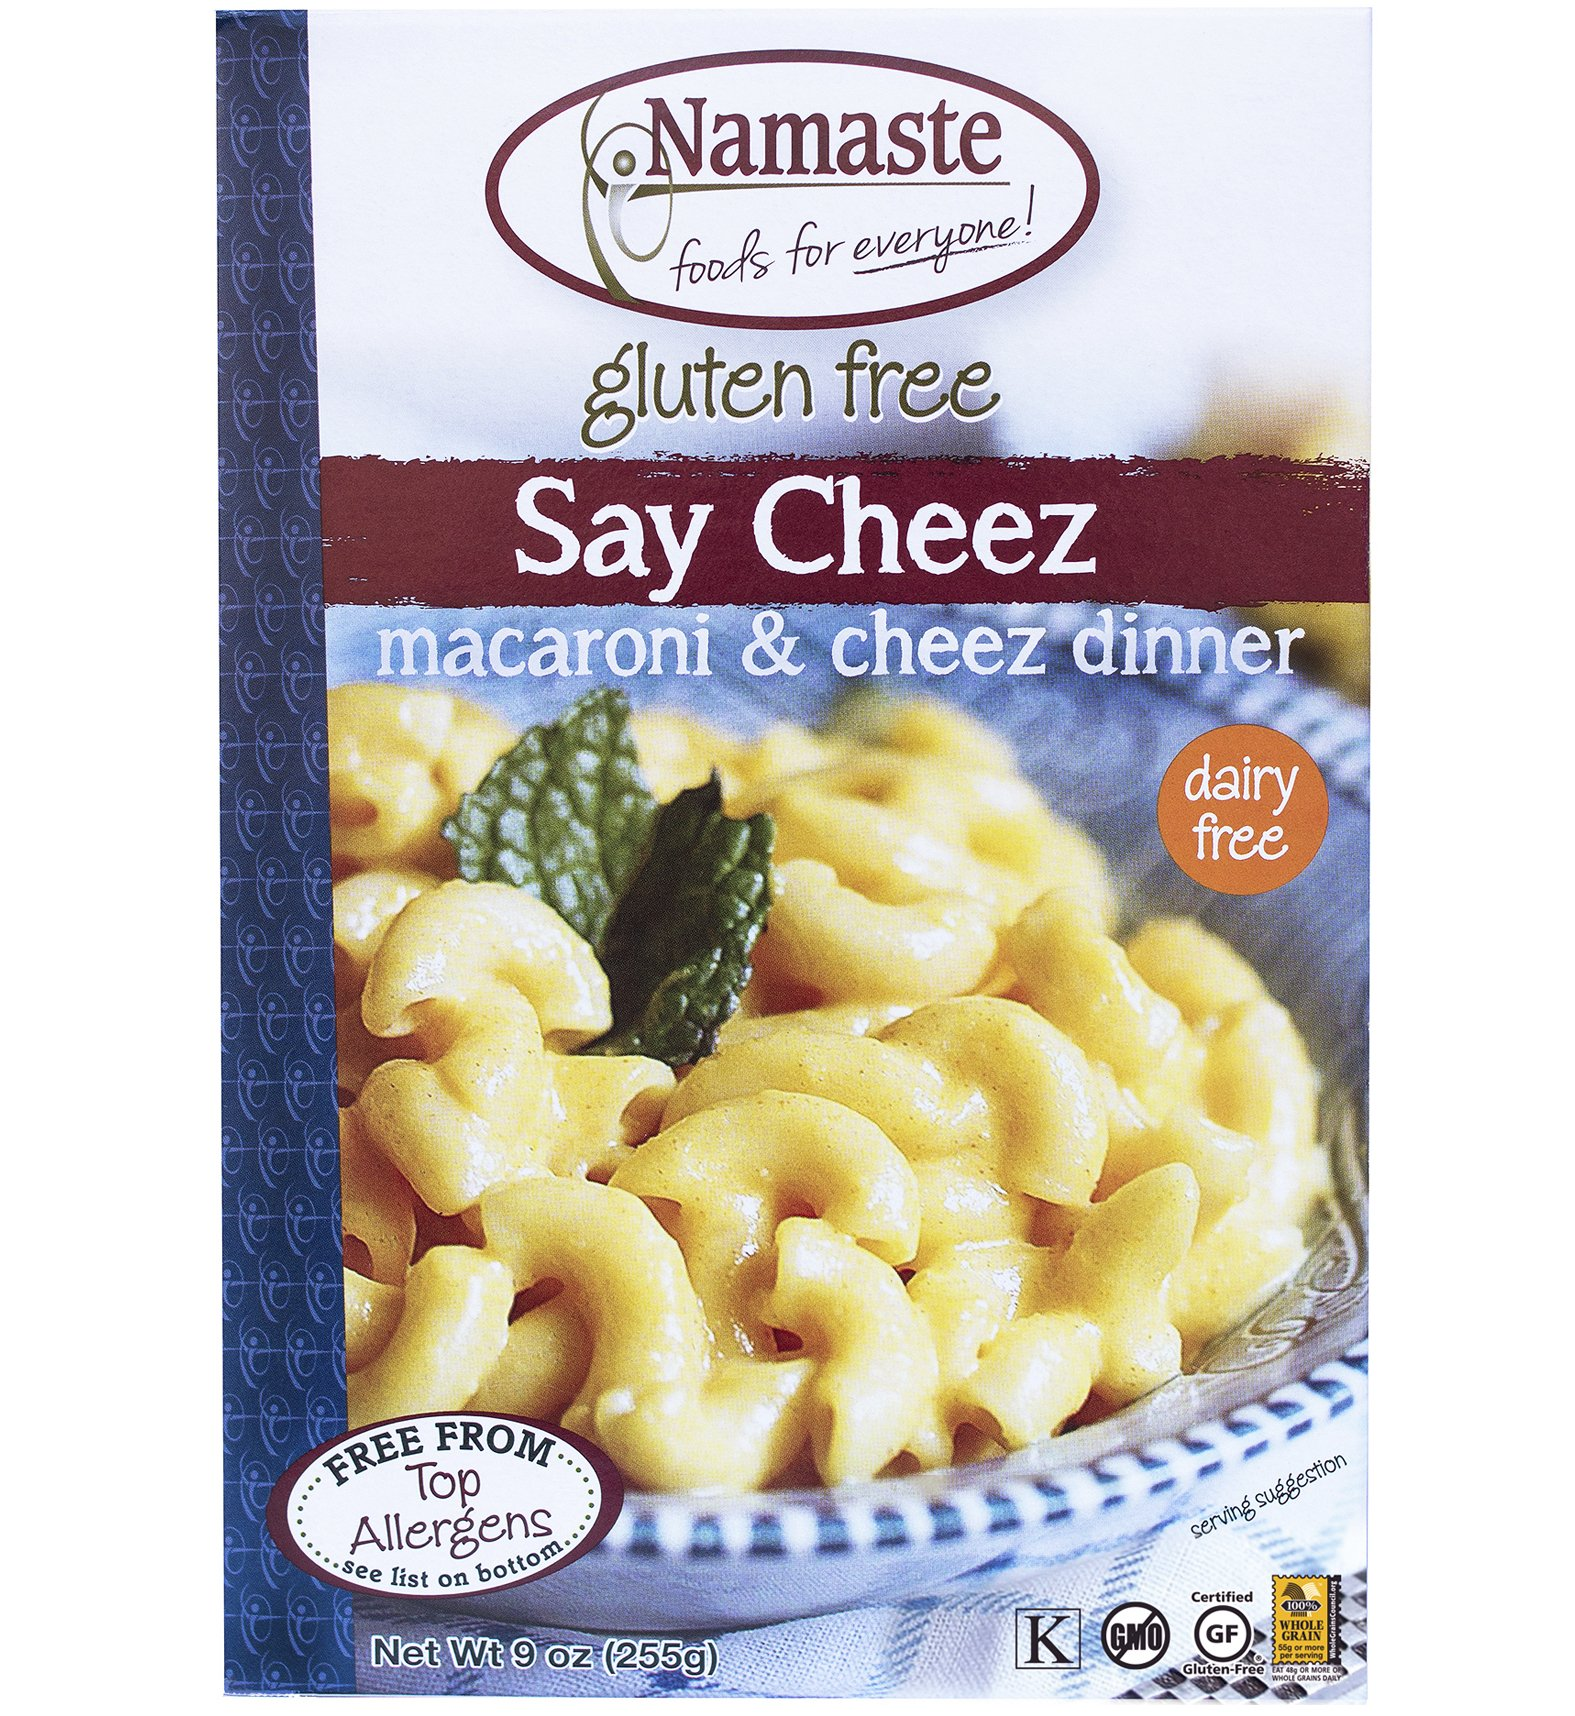 Namaste Foods, Gluten Free Say Cheez Non-Dairy Macaroni & Cheez Dinner 9-Ounce Boxes (Pack of 6) by Namaste Foods